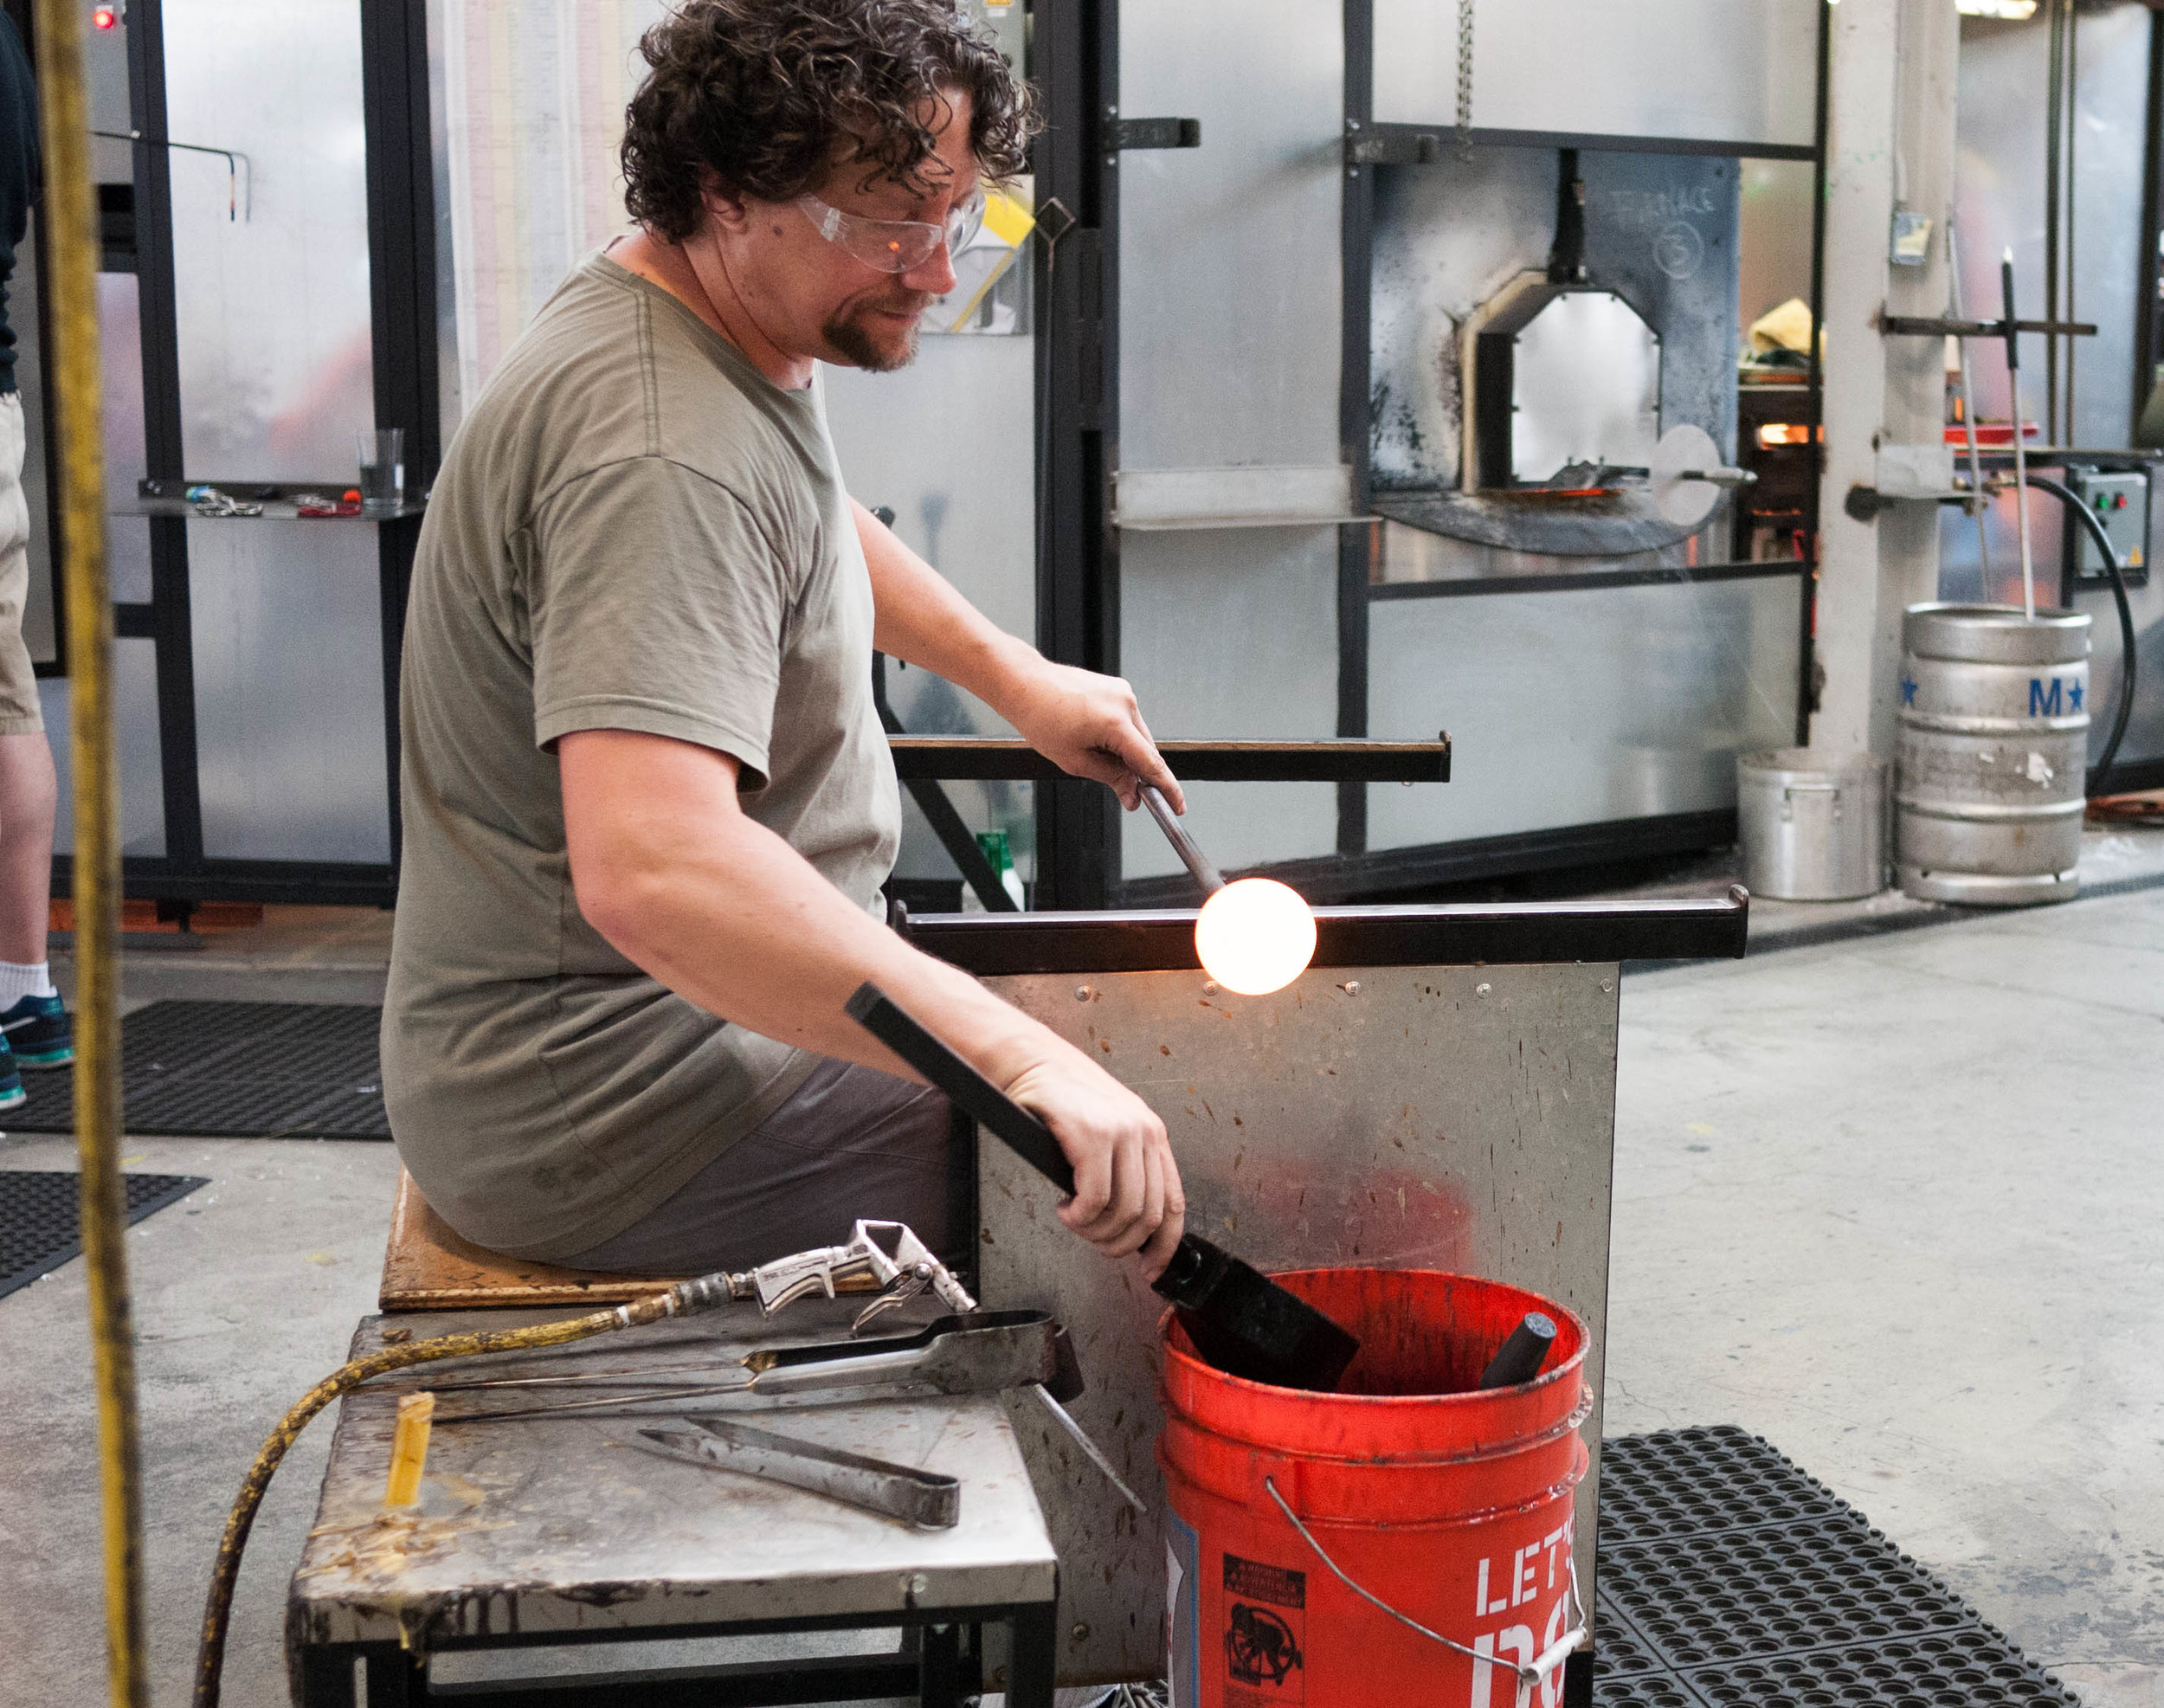 Step 2 in the process is to shape the glassybaby into its classic round shape. This glassworker is using an iron cup and water to shape and cool the votive.